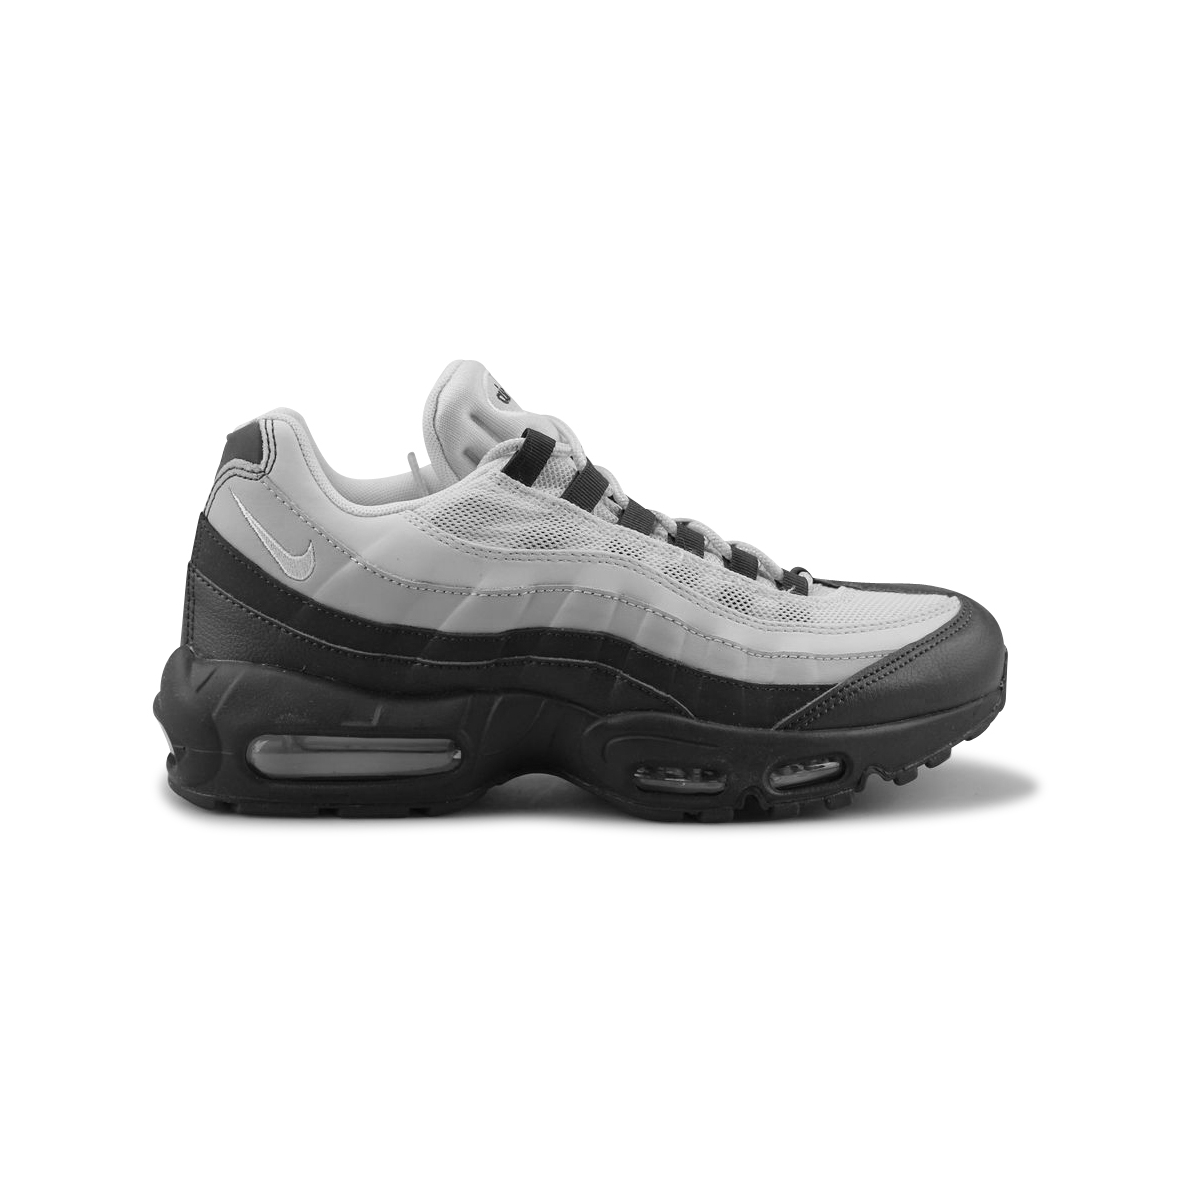 huge discount cf5bb a1bfa Basket Homme>NIKE AIR MAX 95 ESSENTIAL BLANC 749766-406. NIKE AIR MAX 95  ESSENTIAL BLEU 749766-406